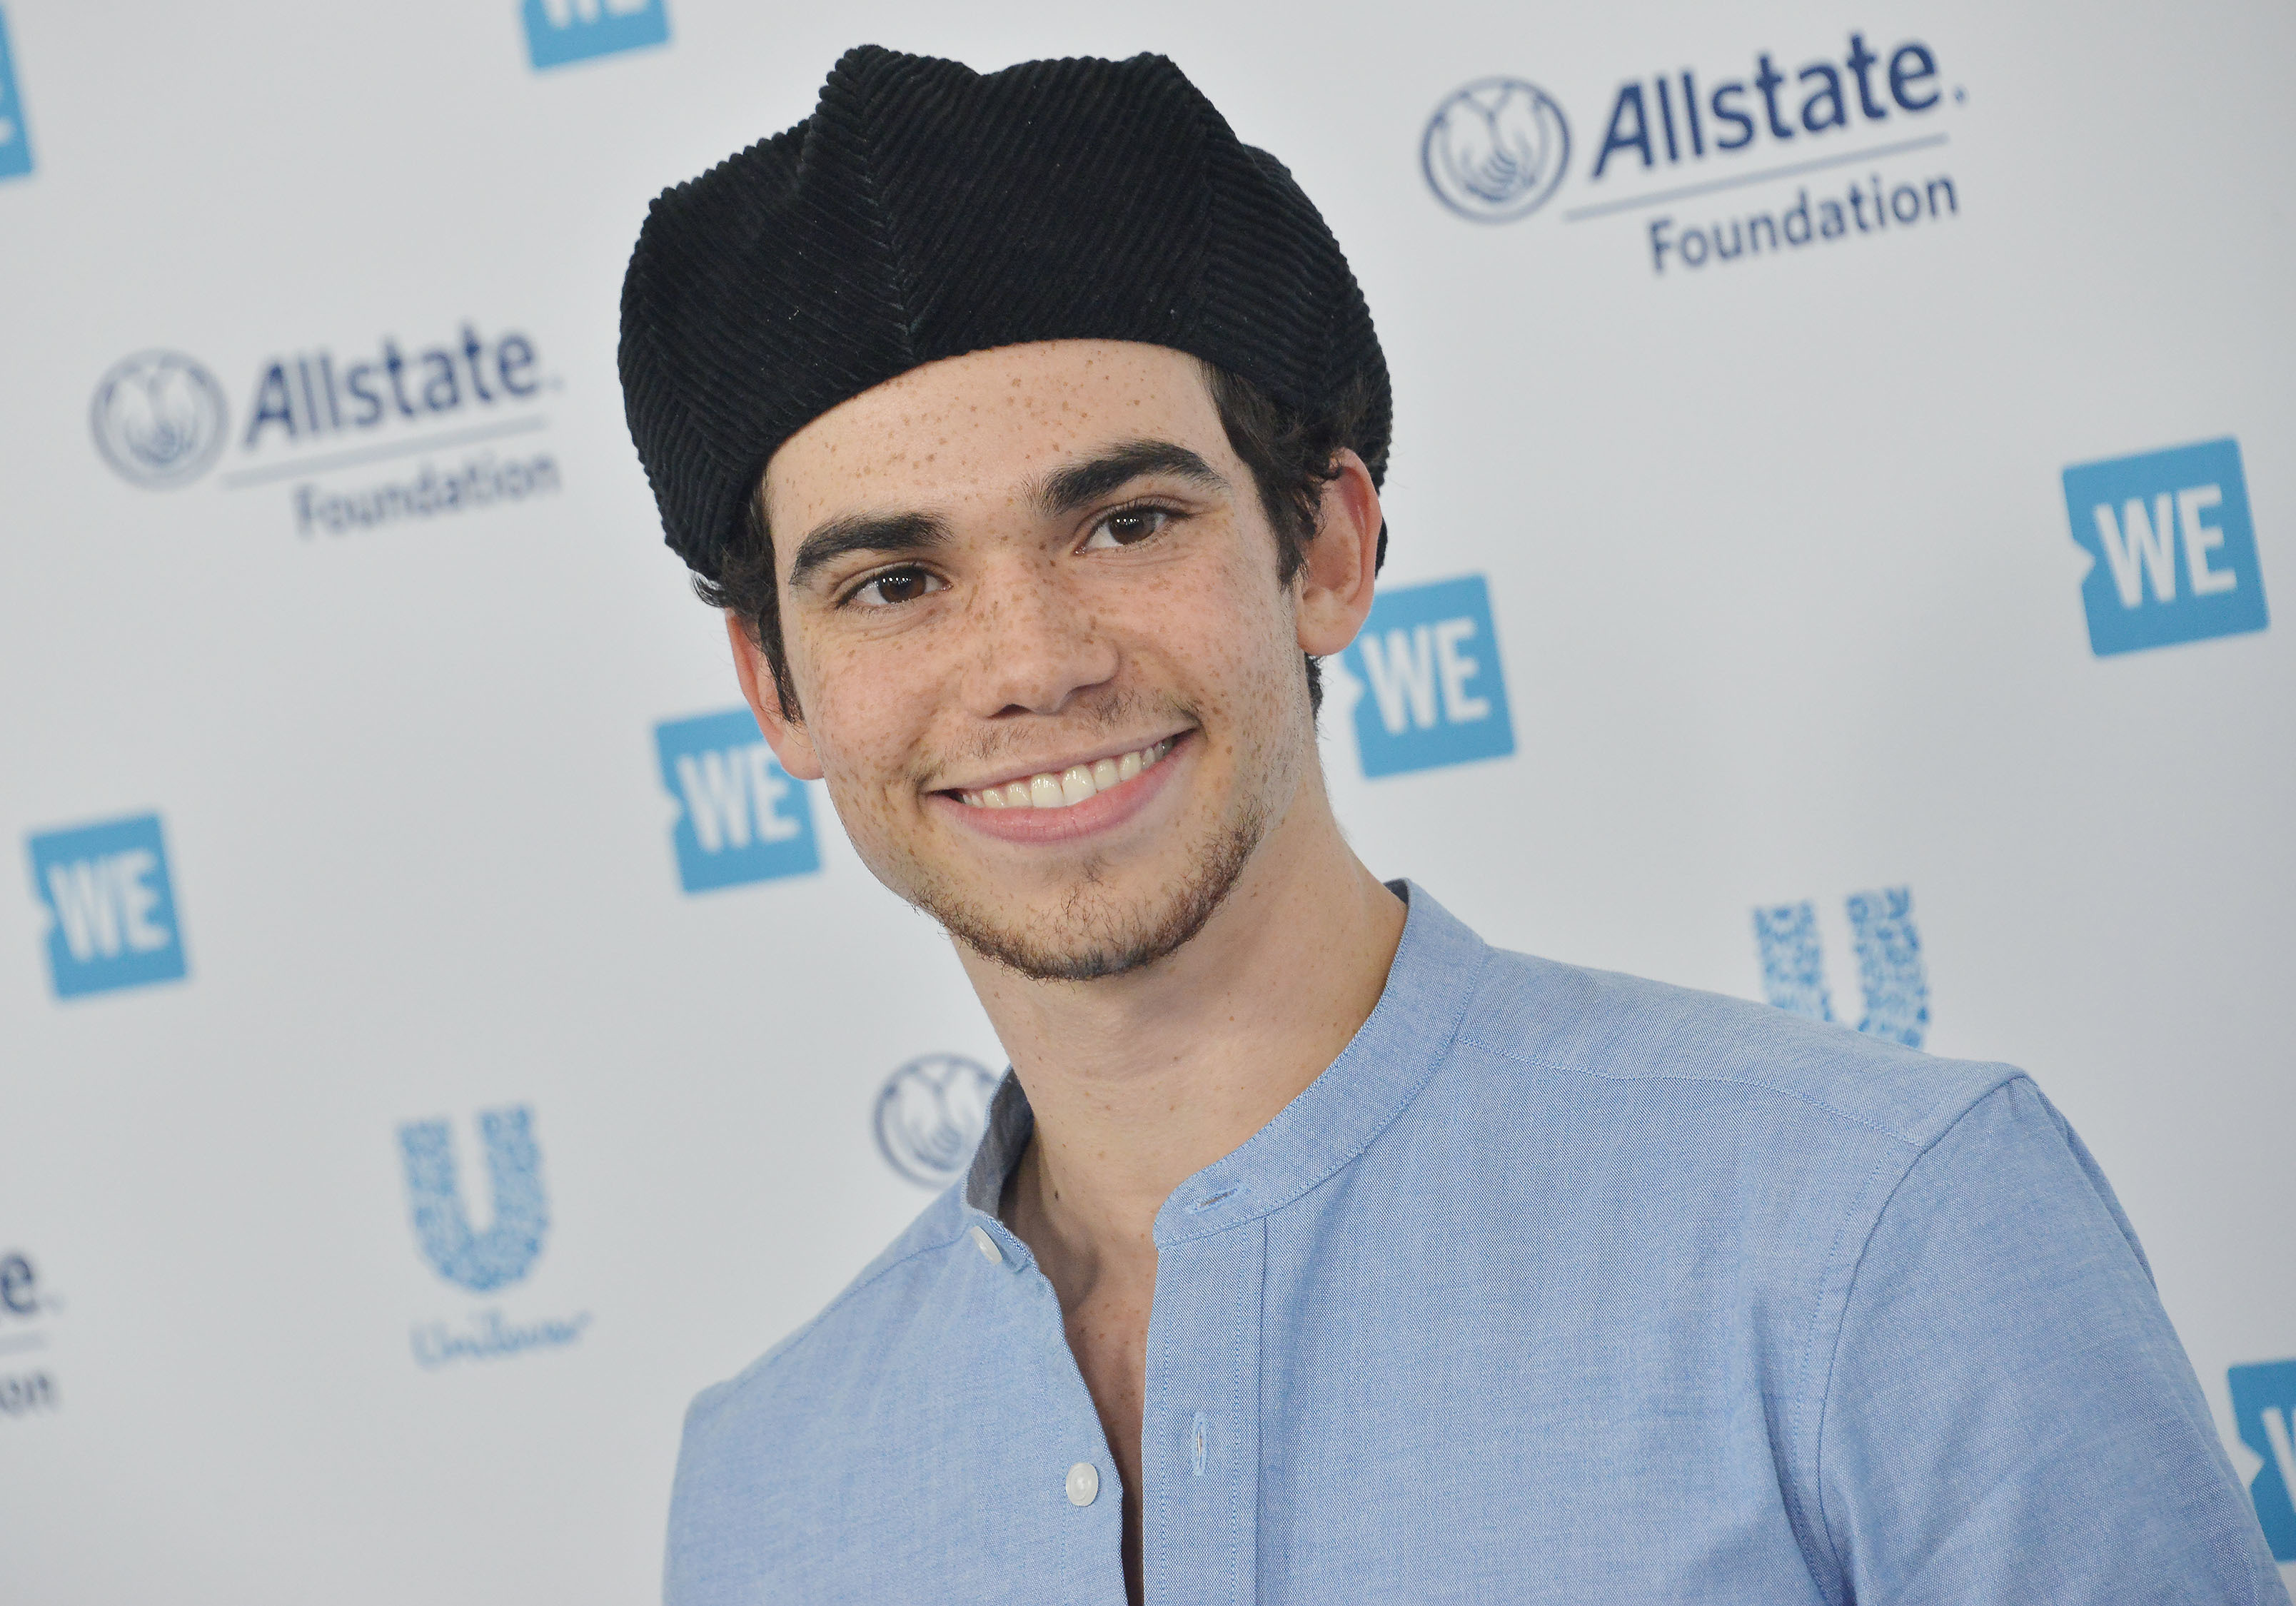 Cameron Boyce arrives at WE Day California 2019 held at The Forum in Inglewood, CA on Thursday, April 25, 2019. (Photo By Sthanlee B. Mirador/Sipa USA)